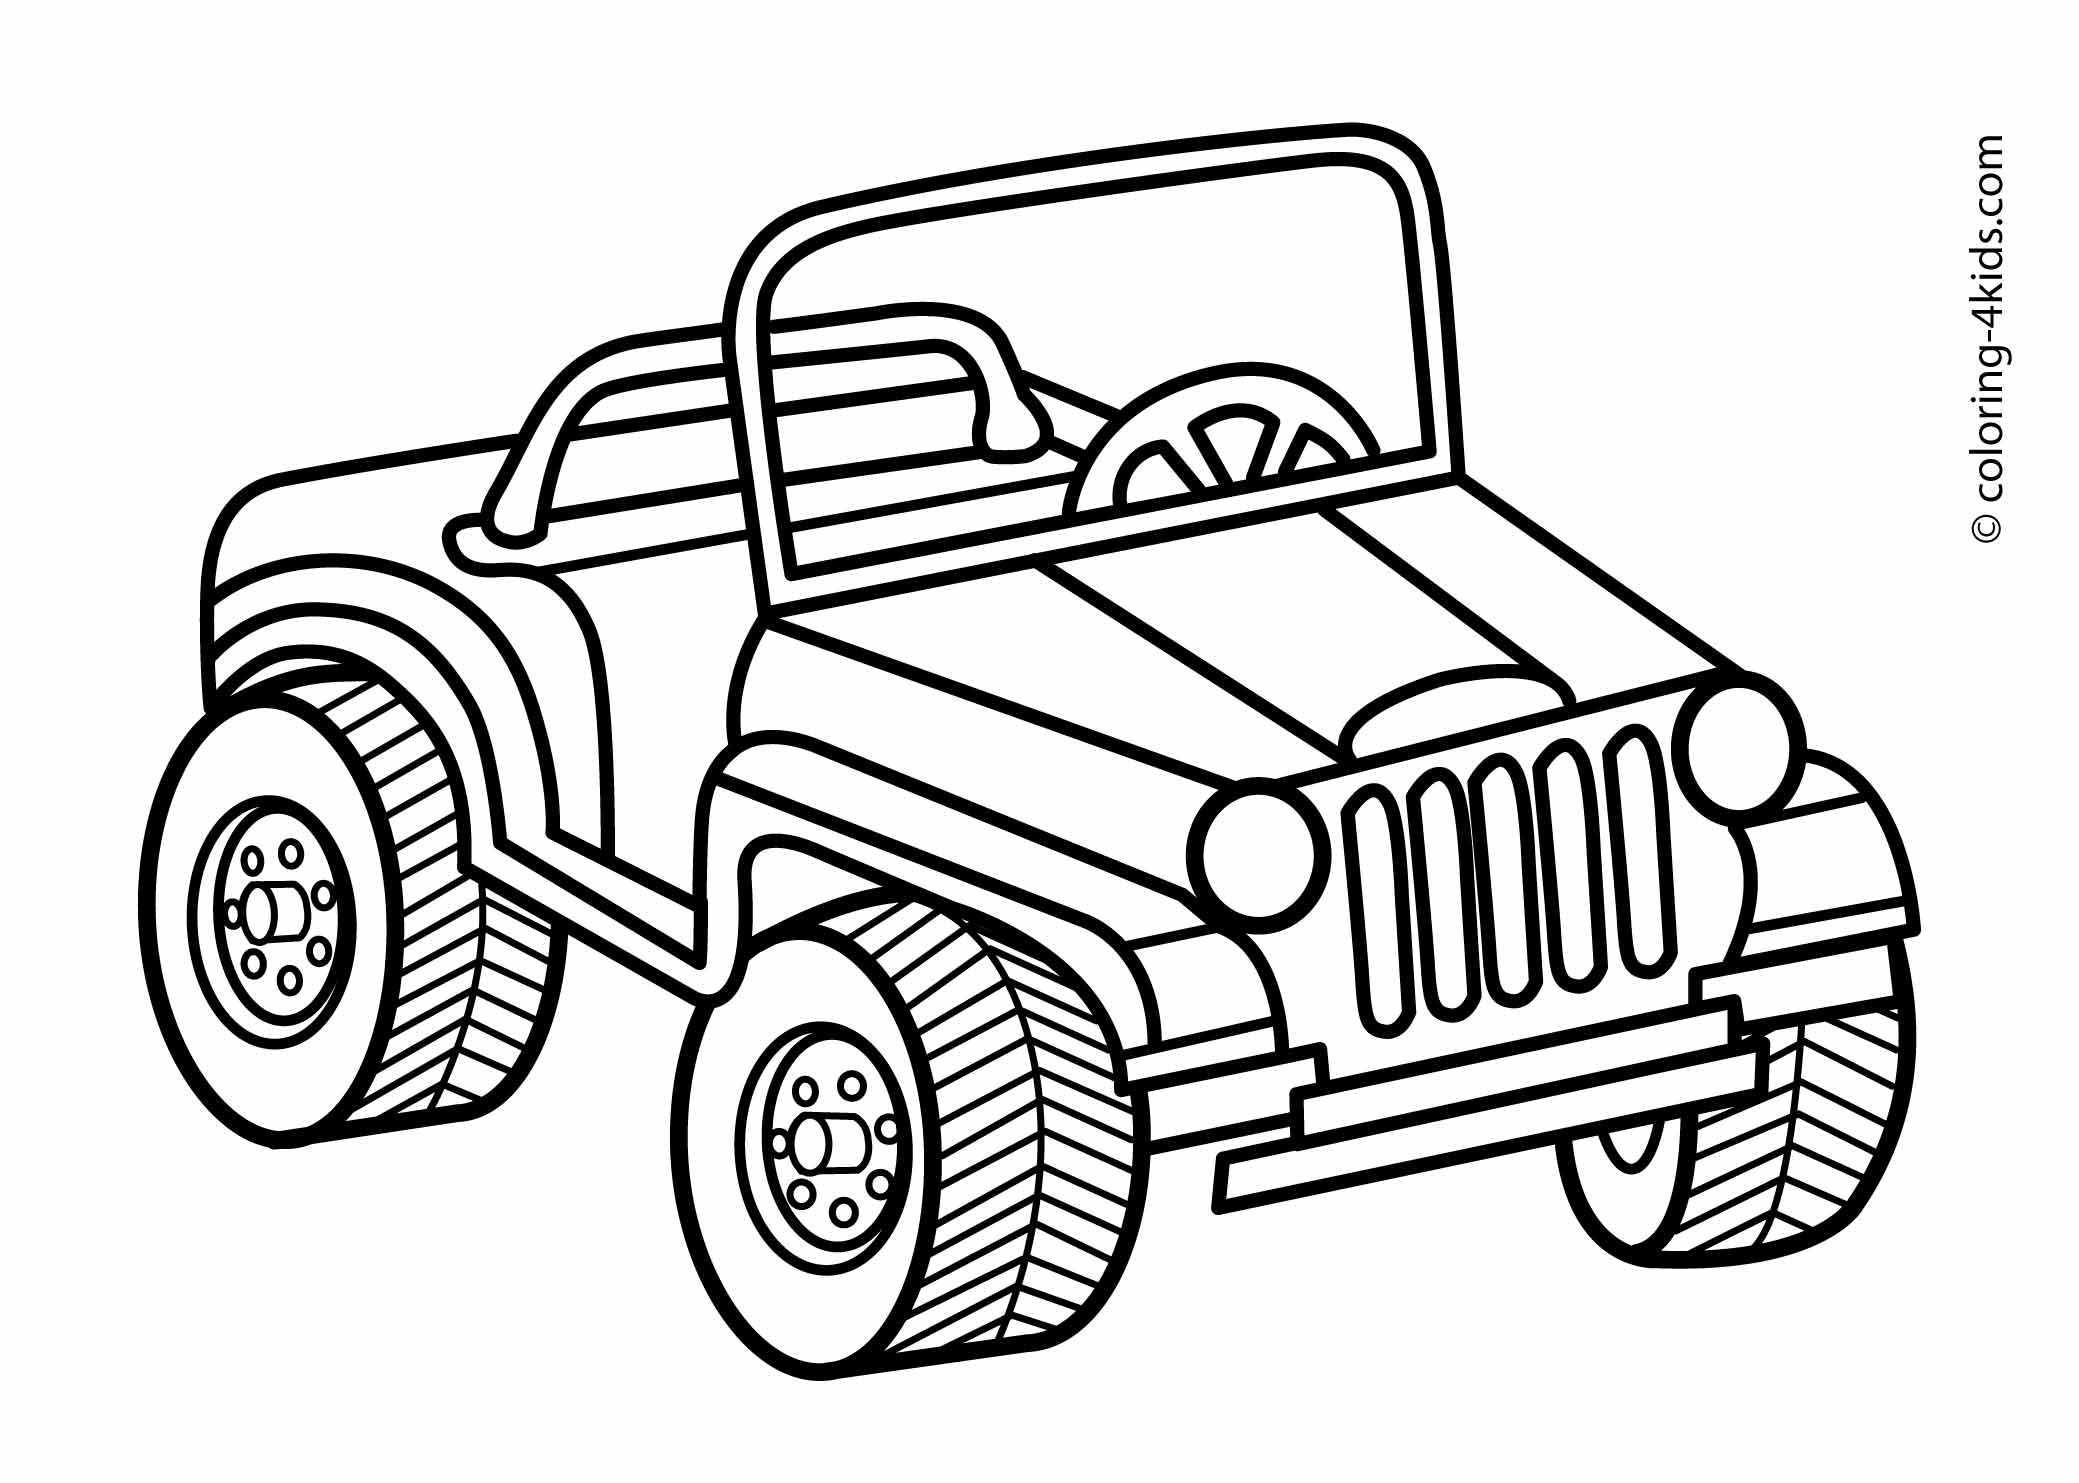 Muscle car drawing outline 2